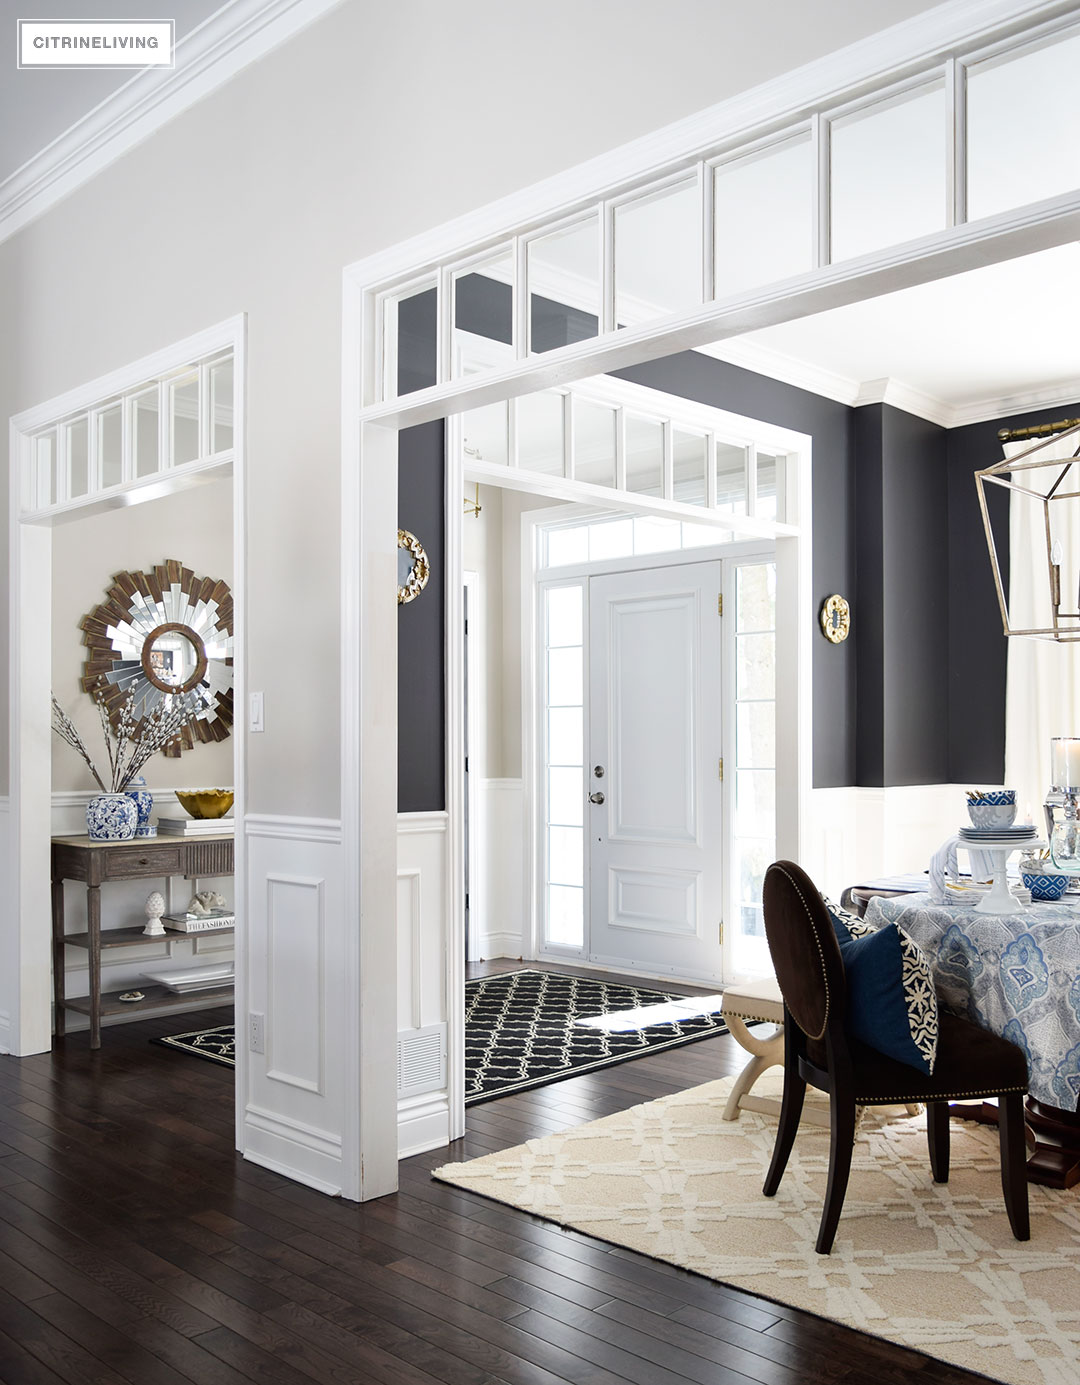 Dining Room Entry Designs Citrineliving Fourteen Ideas To Style Your Home For Spring